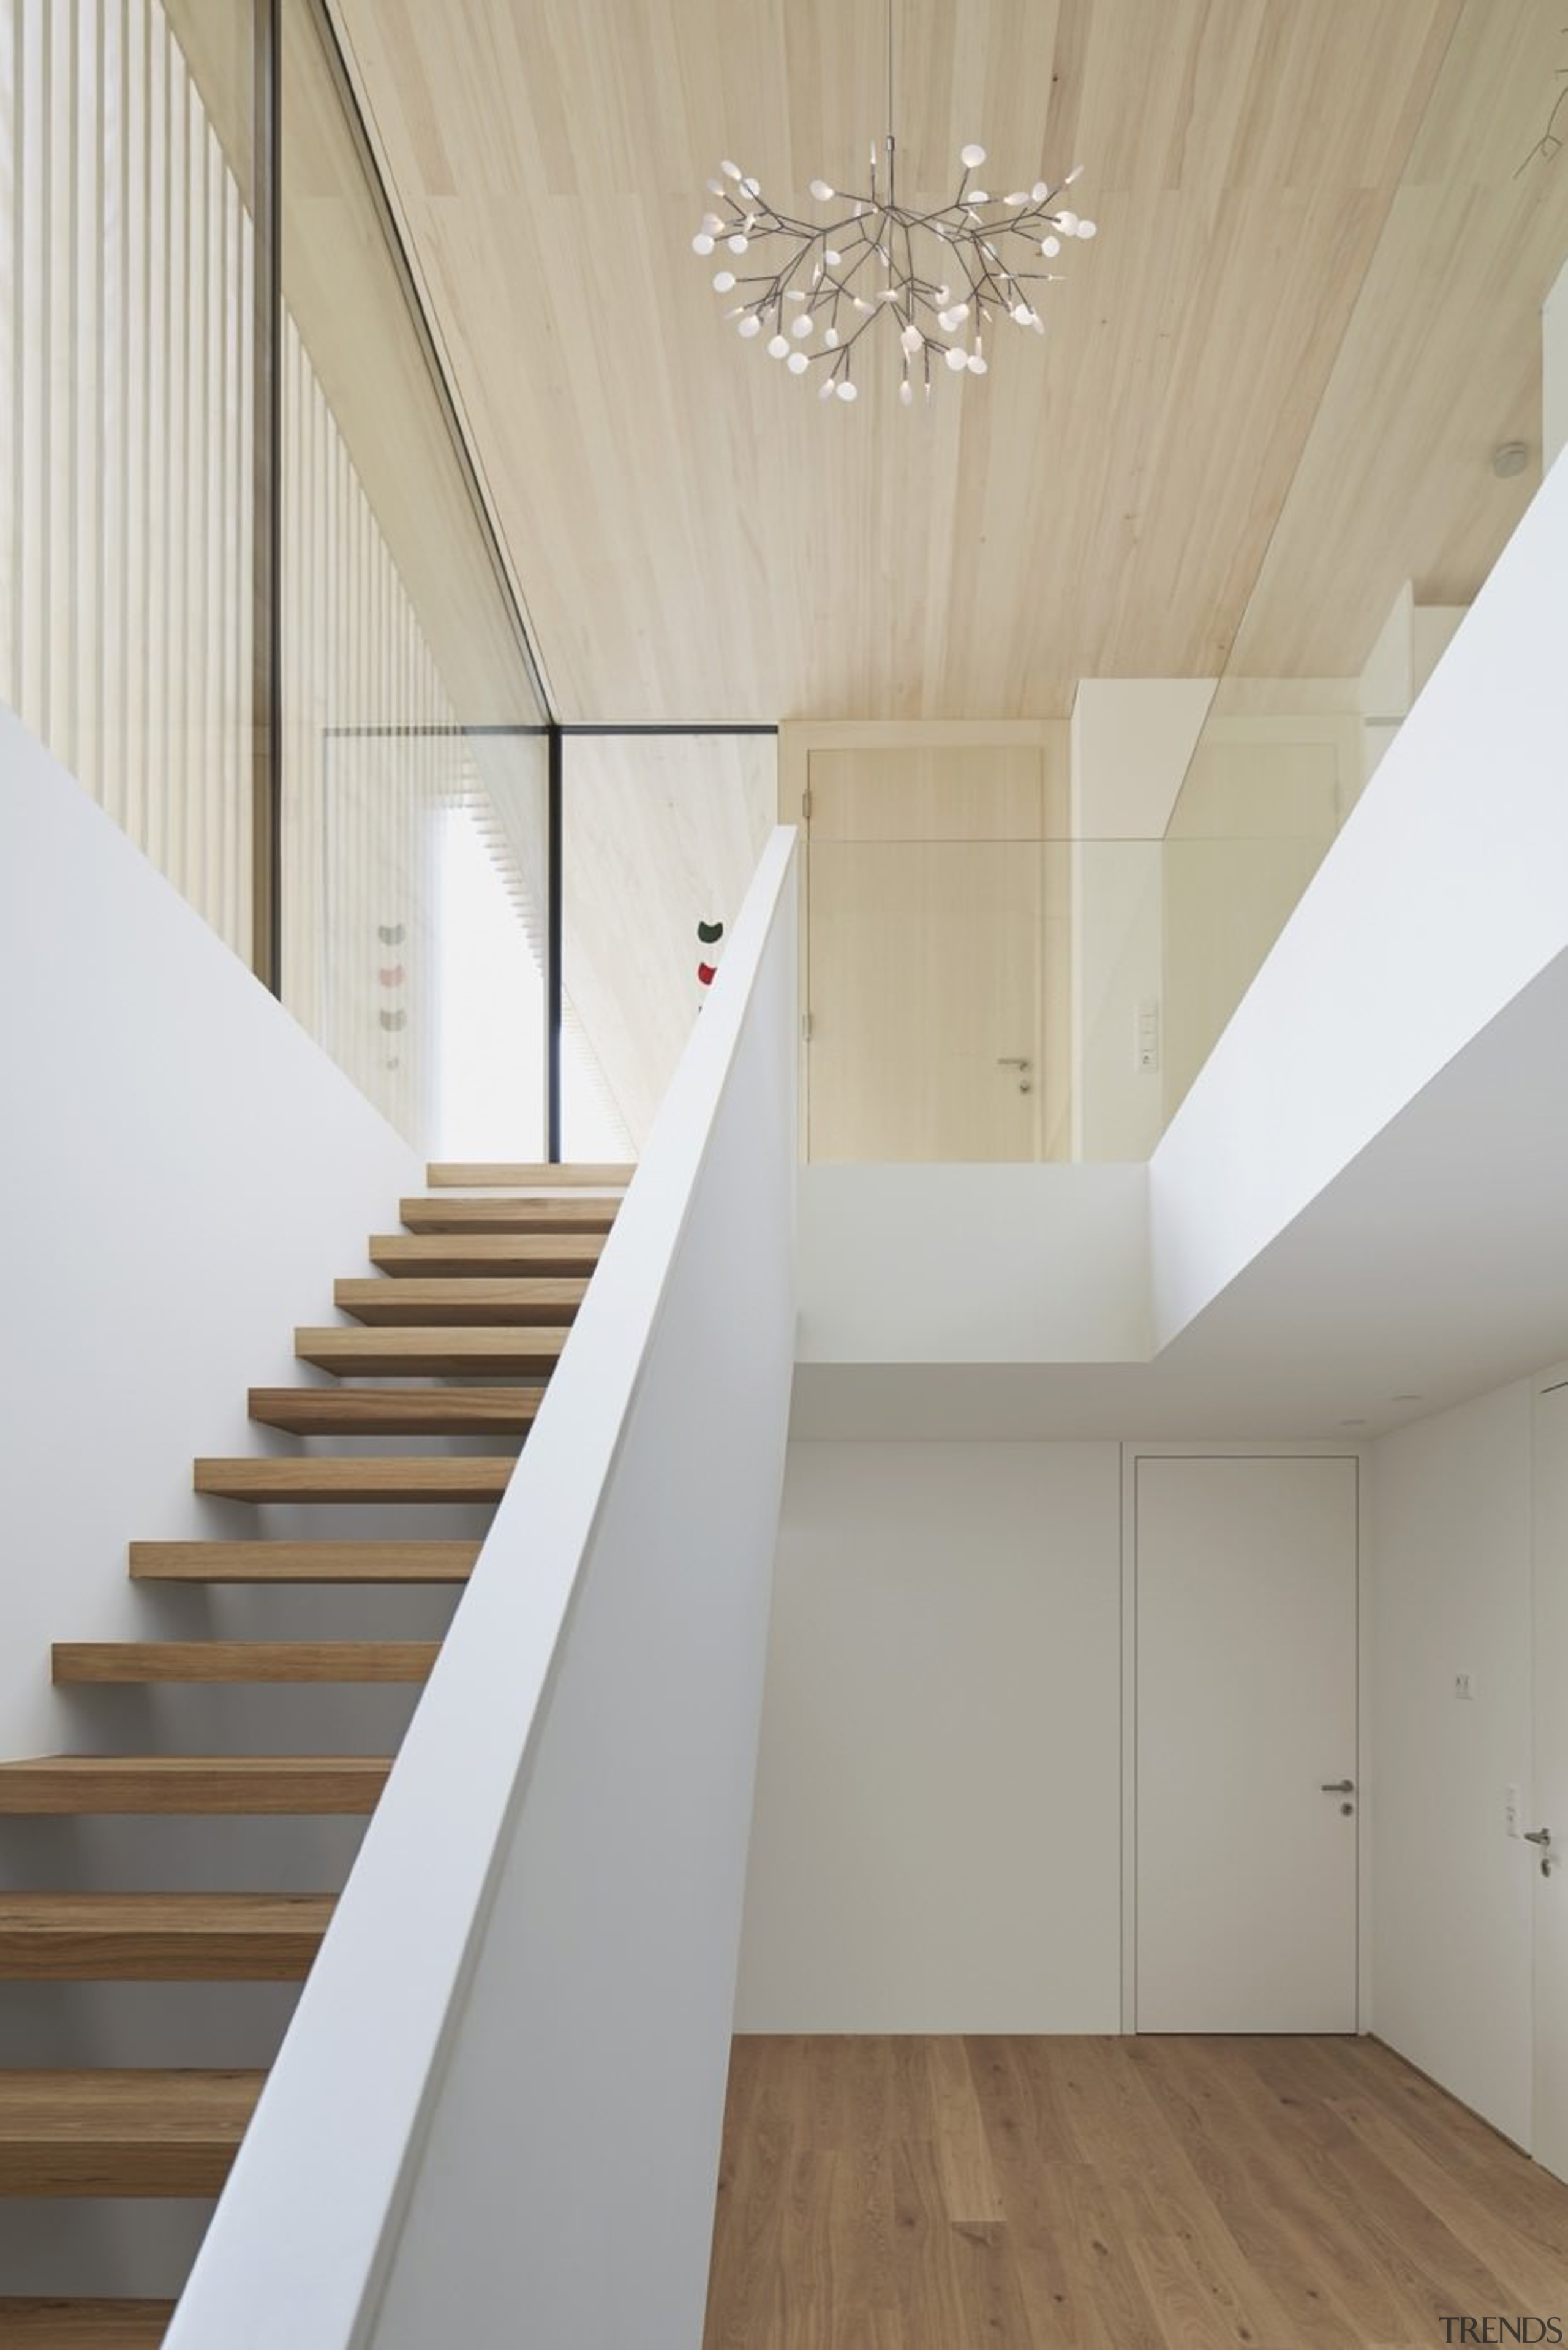 Architect: Helena Weber architectsPhotography by Adolf Bereuter architecture, ceiling, daylighting, floor, handrail, home, house, interior design, loft, product design, property, real estate, stairs, wood, wood flooring, gray